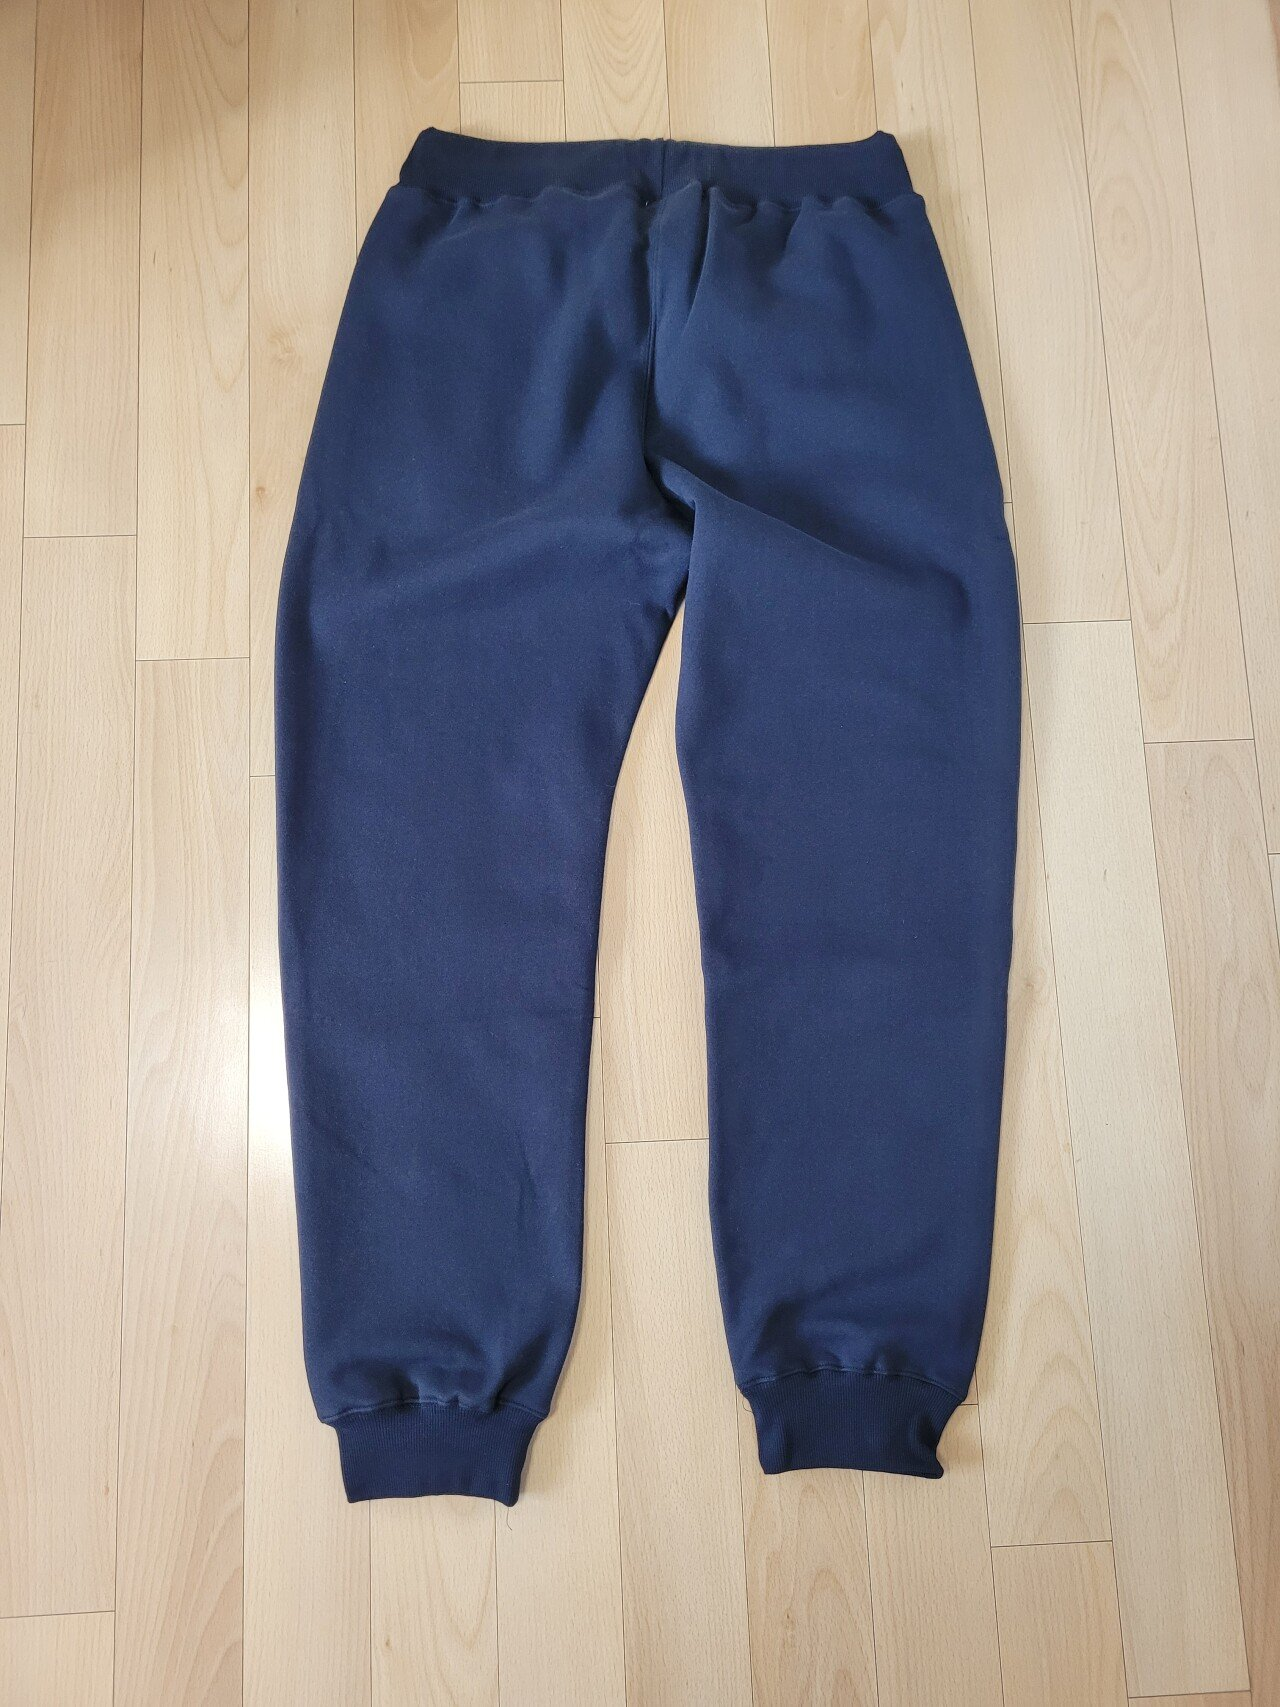 20210218_154712.jpg IAB Studio Sweat Pant Navy (21ss)